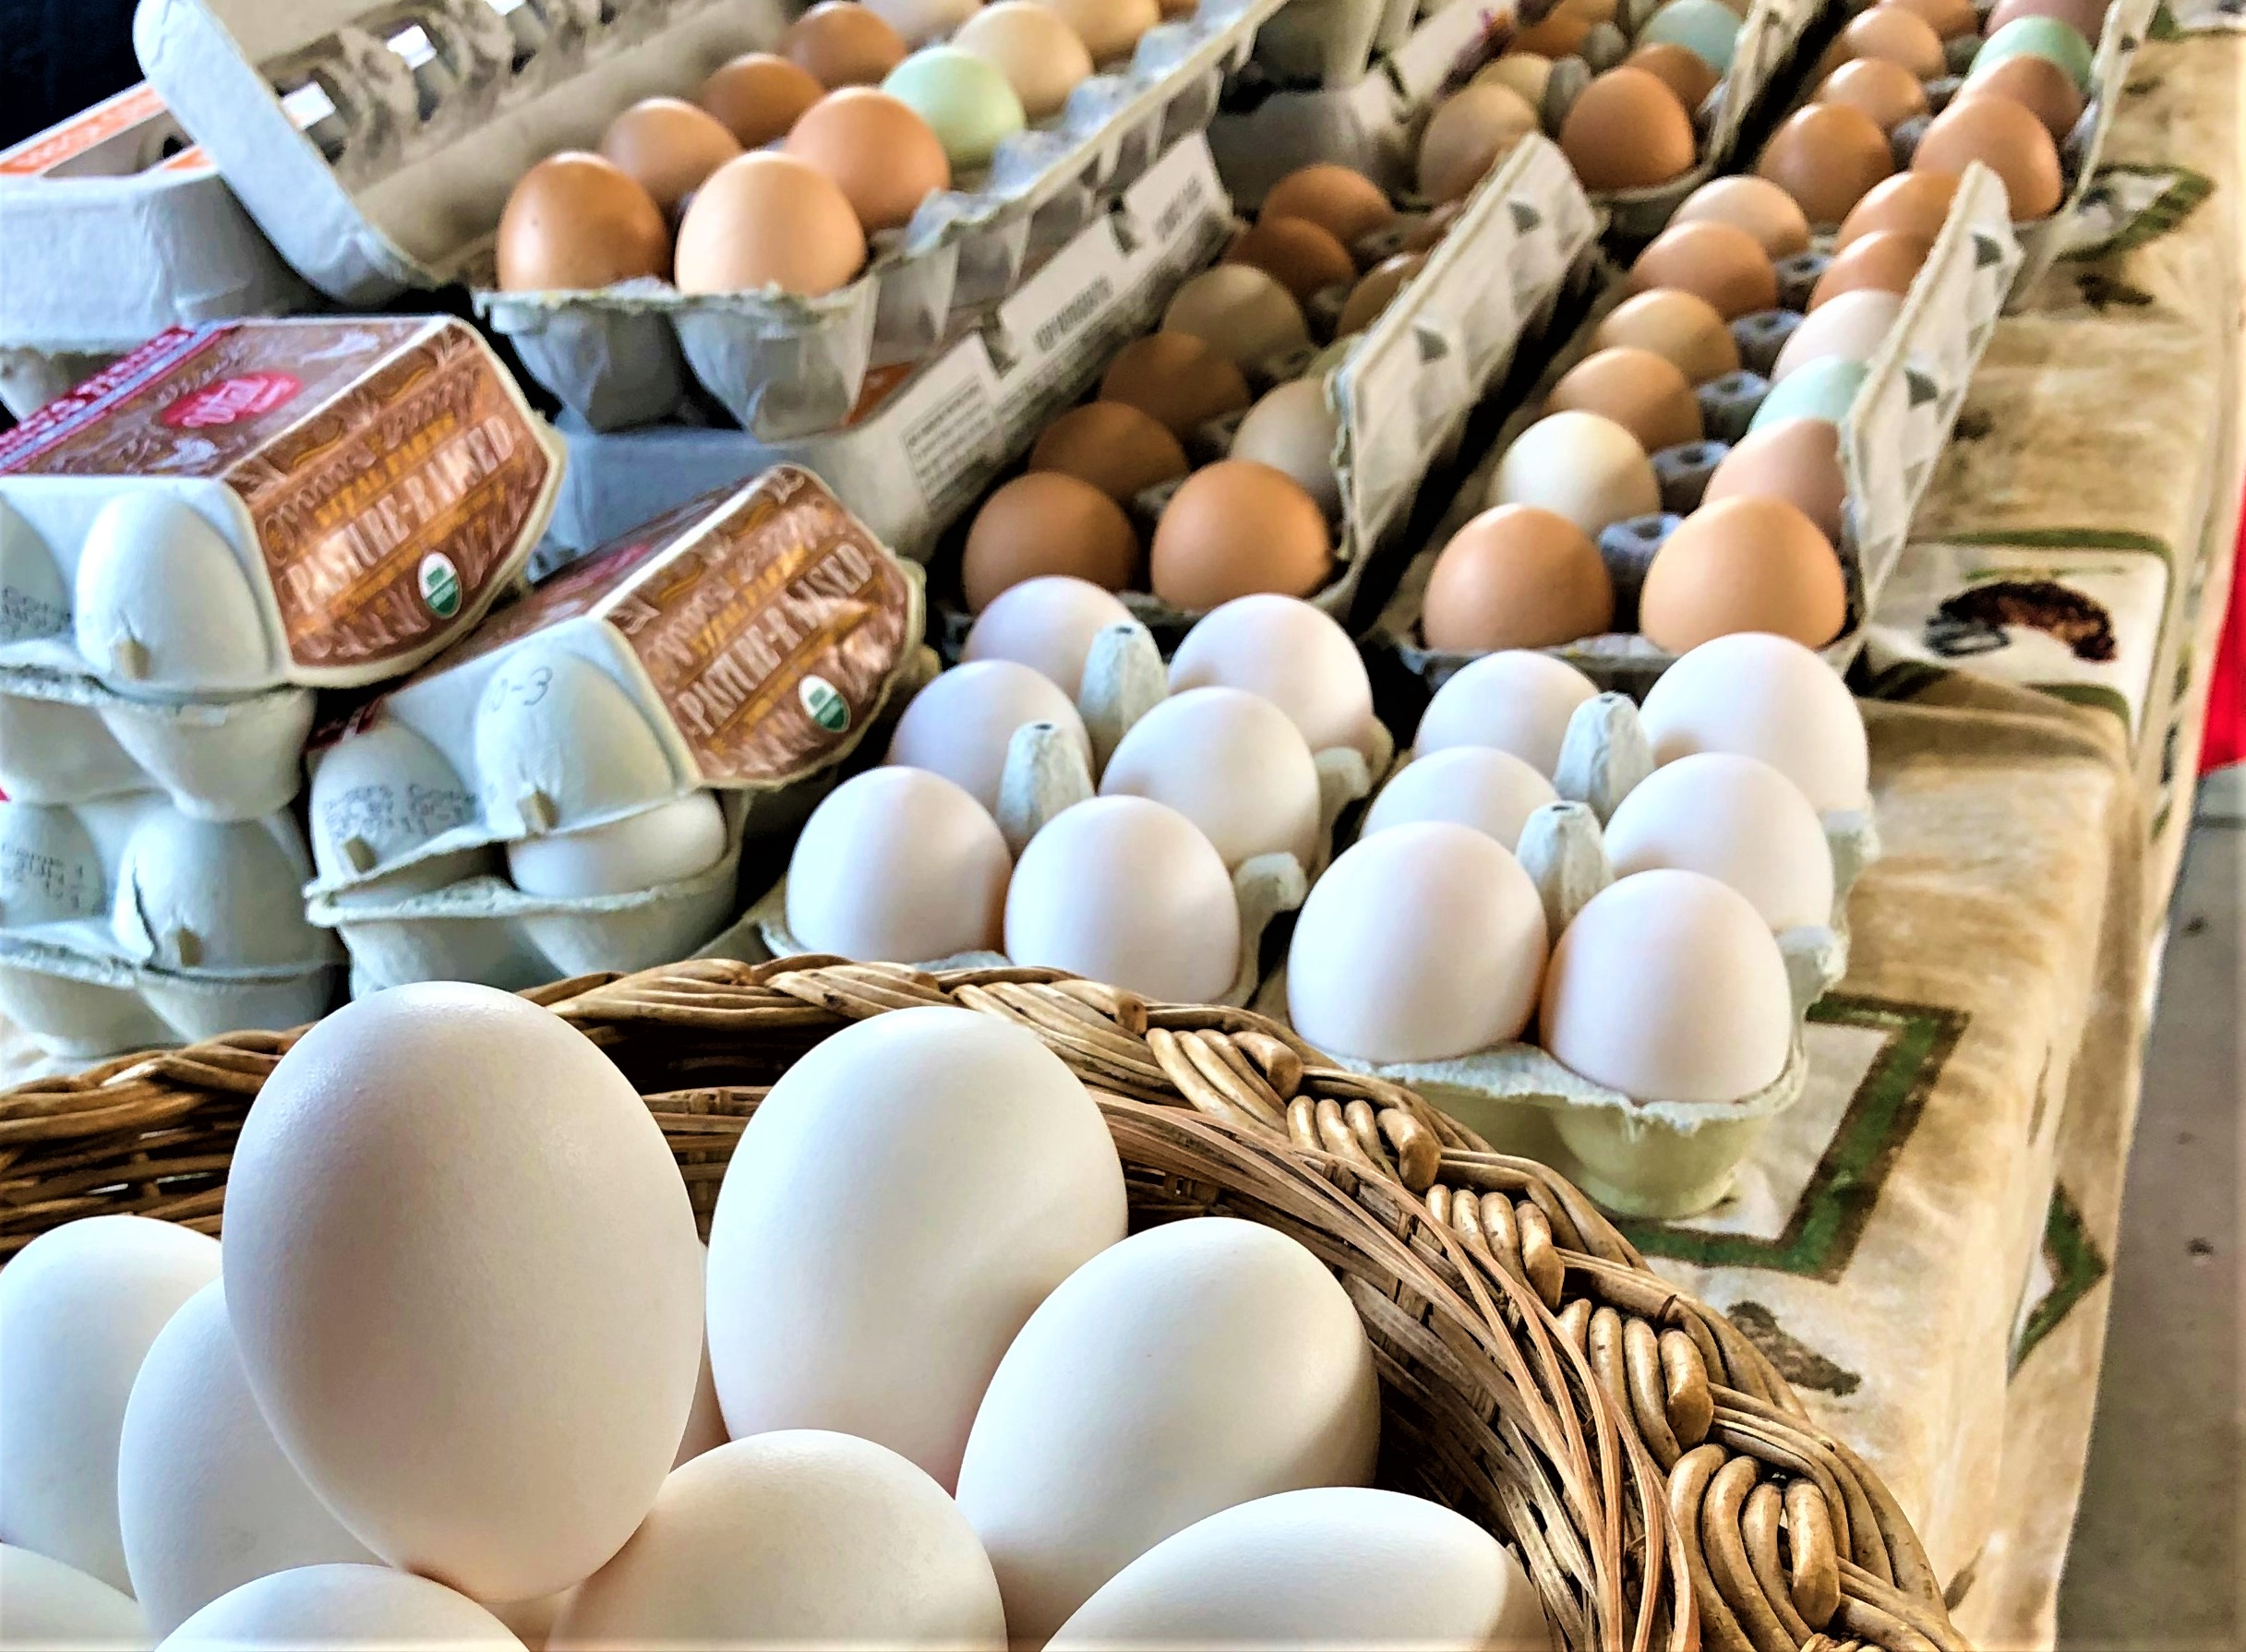 Fresh eggs at the Ann Arbor Farmer's Market, one of many free things to do in Ann Arbor MI